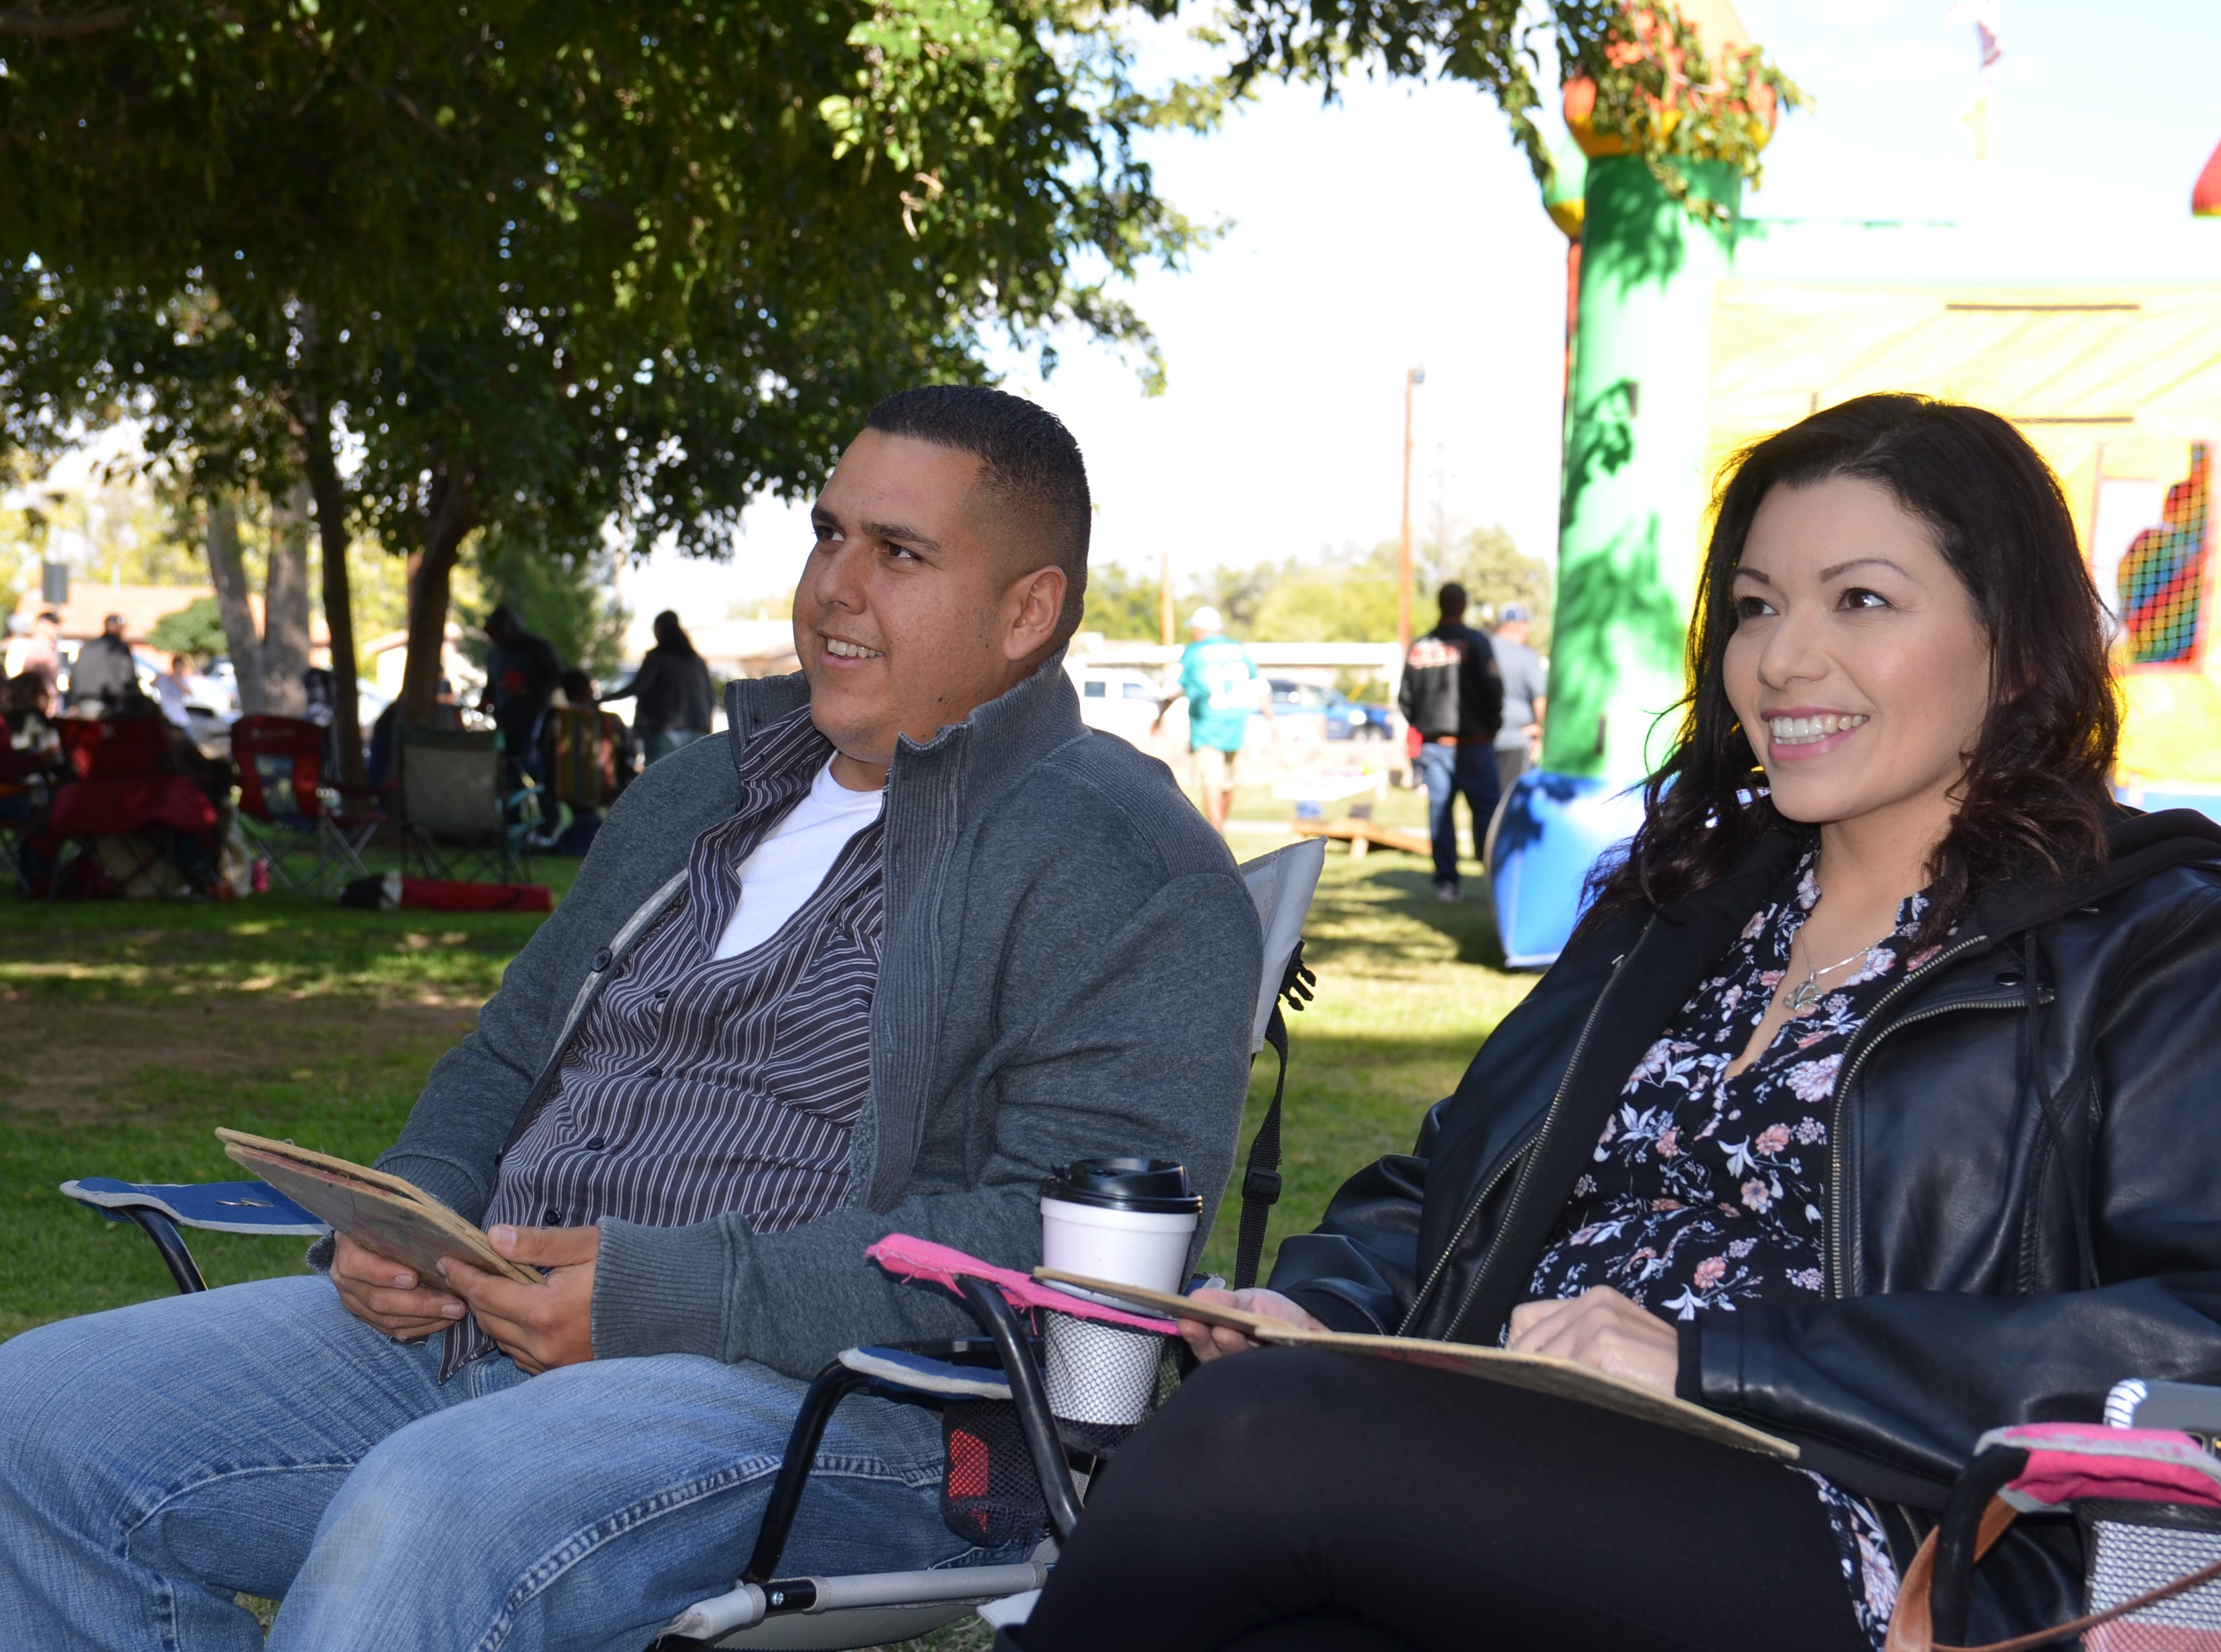 Left to right: Alex Romero Irene Trejo eagerly await for their numbers to be called during the bingo activity at the Klobase Festival at Court County Park on Sunday.